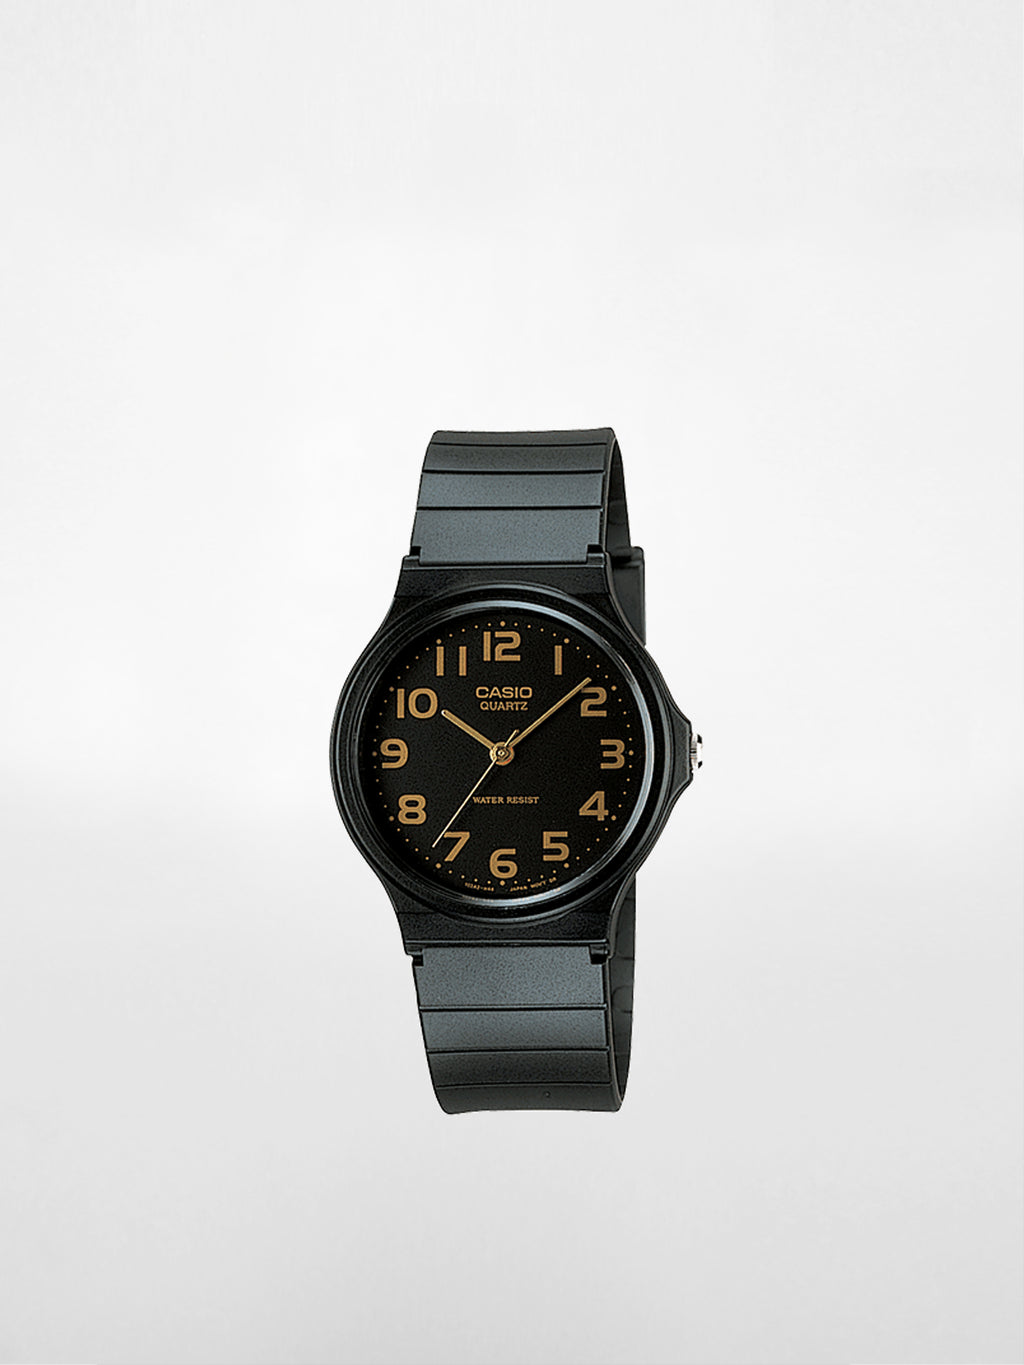 Casio - Analog Resin Band Watch / Black & Black